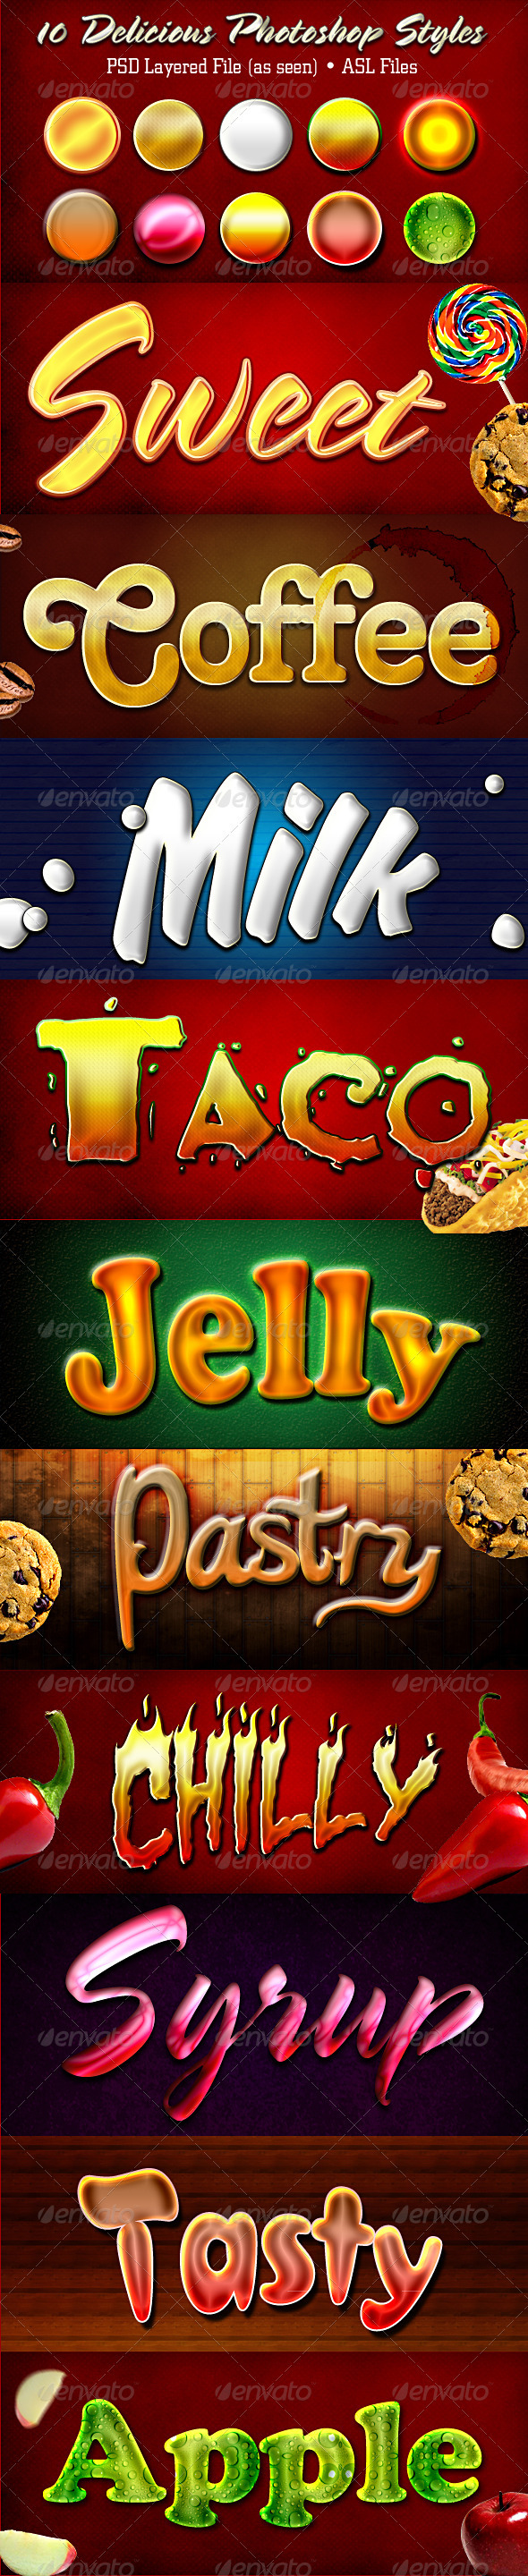 GraphicRiver Delicious Photoshop Styles 1859007